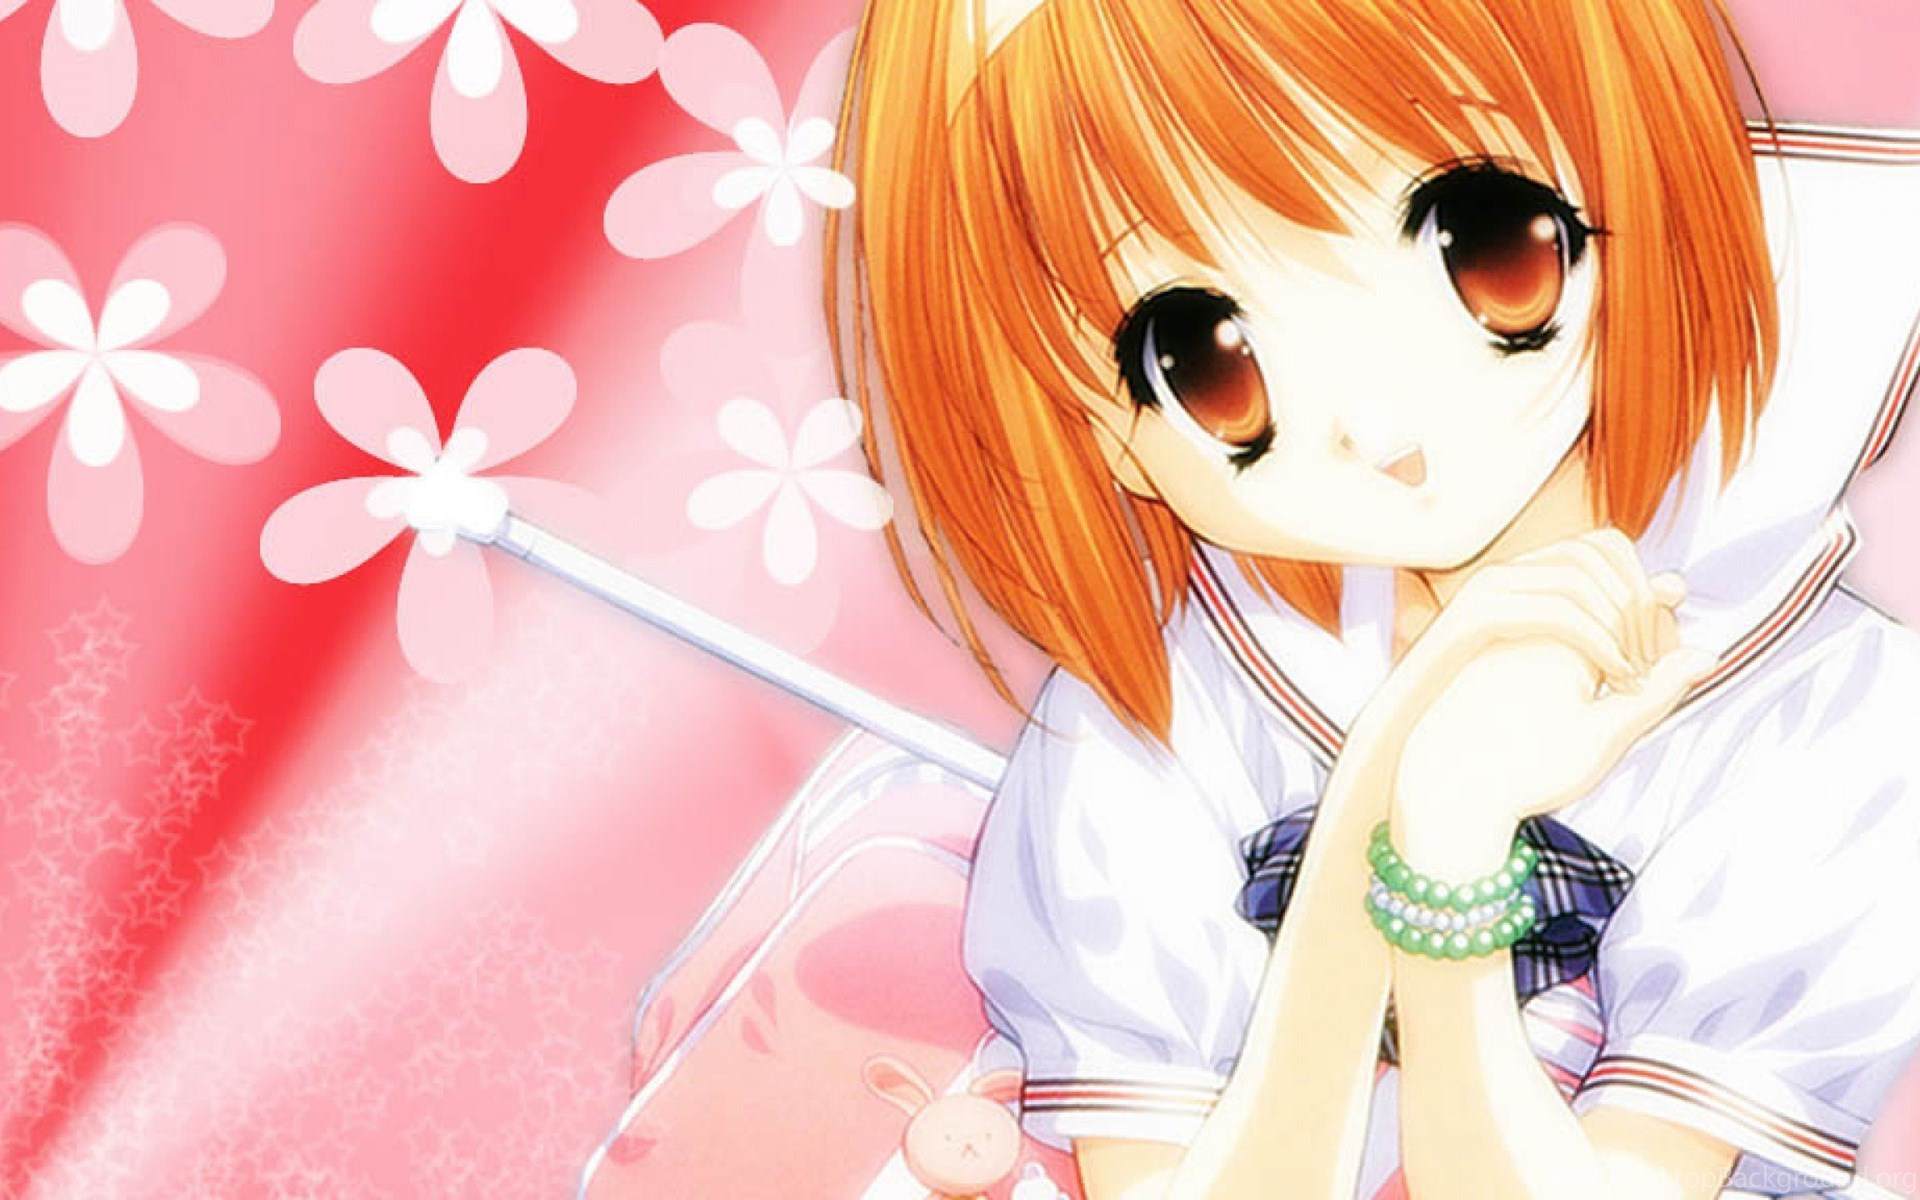 kawaii anime wallpapers » walldevil best free hd desktop and